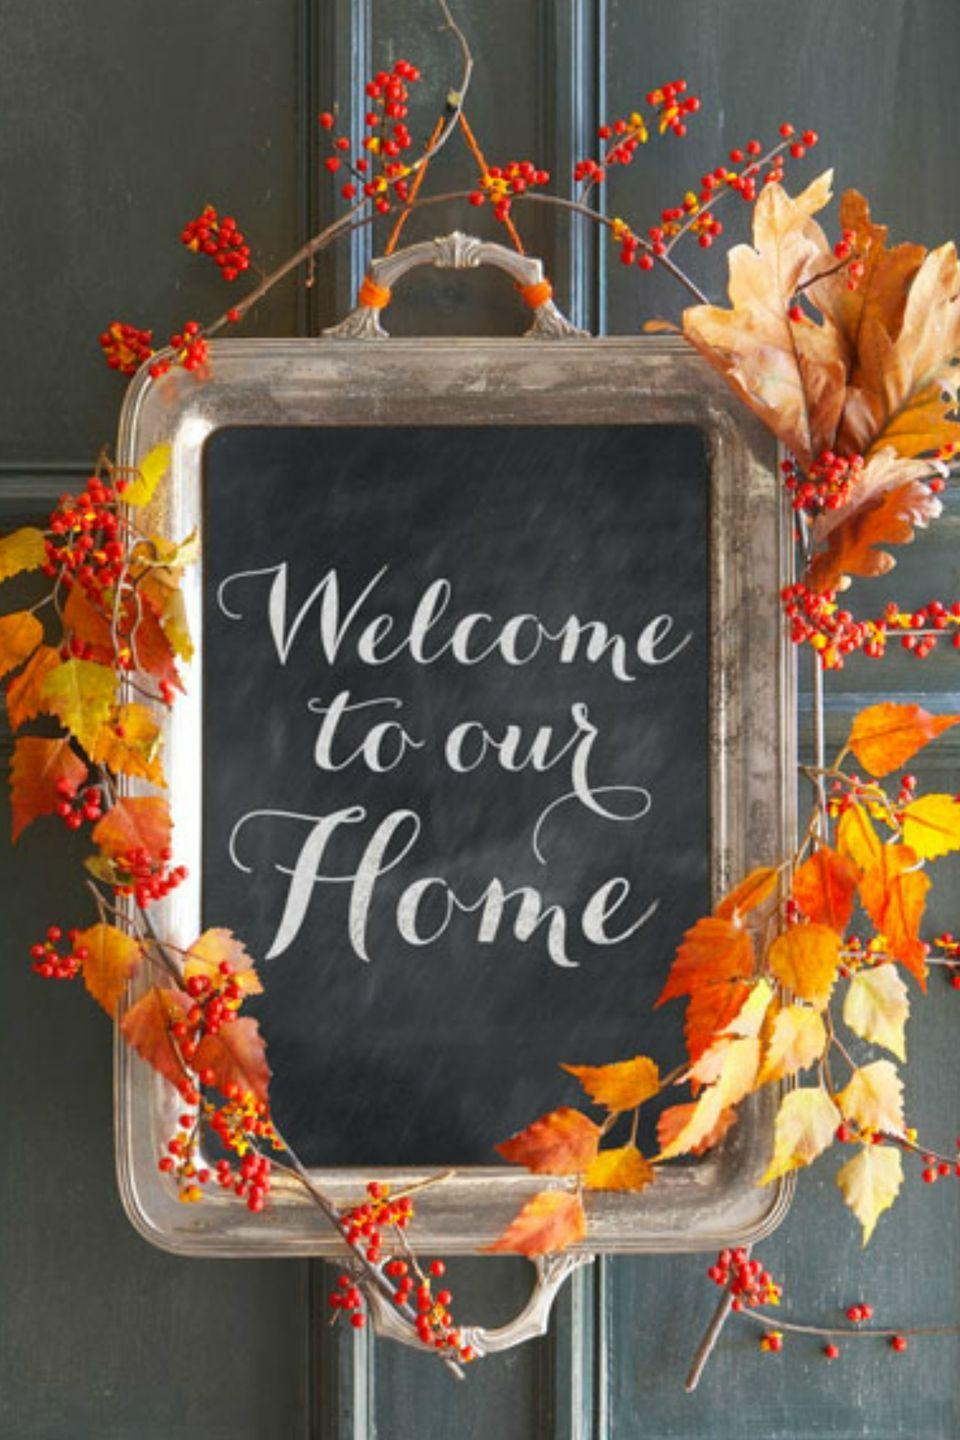 "<p>Greet guests with this charming alternative to a fall wreath. Simply apply a layer of chalkboard paint to the inside of an old tray, then add autumn branches and bittersweet berries for a seasonal finish. (Swap in evergreen and holly for the holidays!)</p><p><strong><a class=""link rapid-noclick-resp"" href=""https://www.amazon.com/DecoArt-Americana-Chalkboard-Paint-2-Ounce/dp/B003ULNC0Q/?th=1&tag=syn-yahoo-20&ascsubtag=%5Bartid%7C10050.g.2063%5Bsrc%7Cyahoo-us"" rel=""nofollow noopener"" target=""_blank"" data-ylk=""slk:SHOP CHALKBOARD PAINT"">SHOP CHALKBOARD PAINT</a></strong></p>"